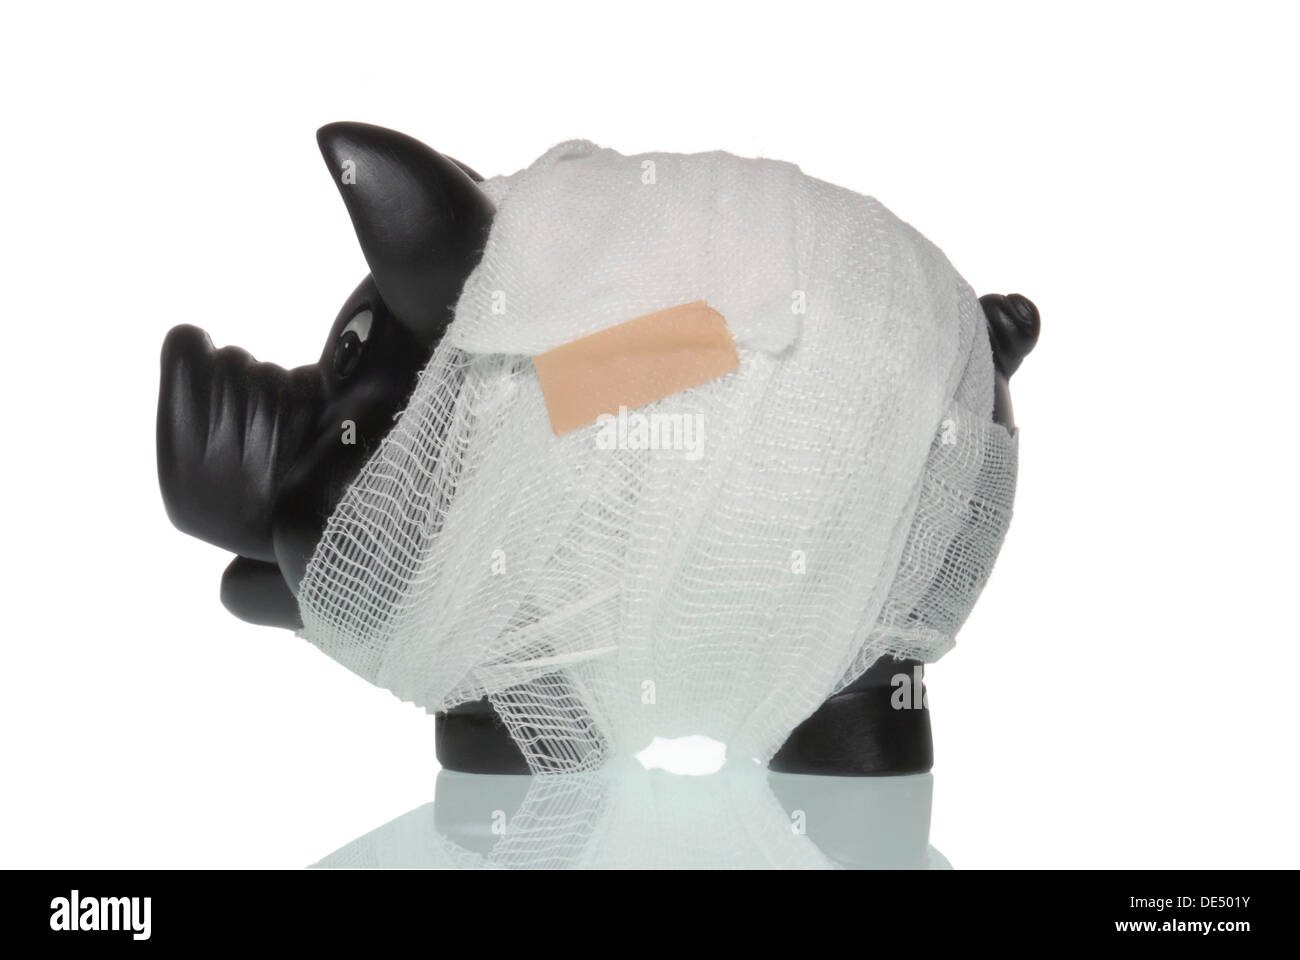 Bandaged piggy bank, symbolic image for sick banks - Stock Image